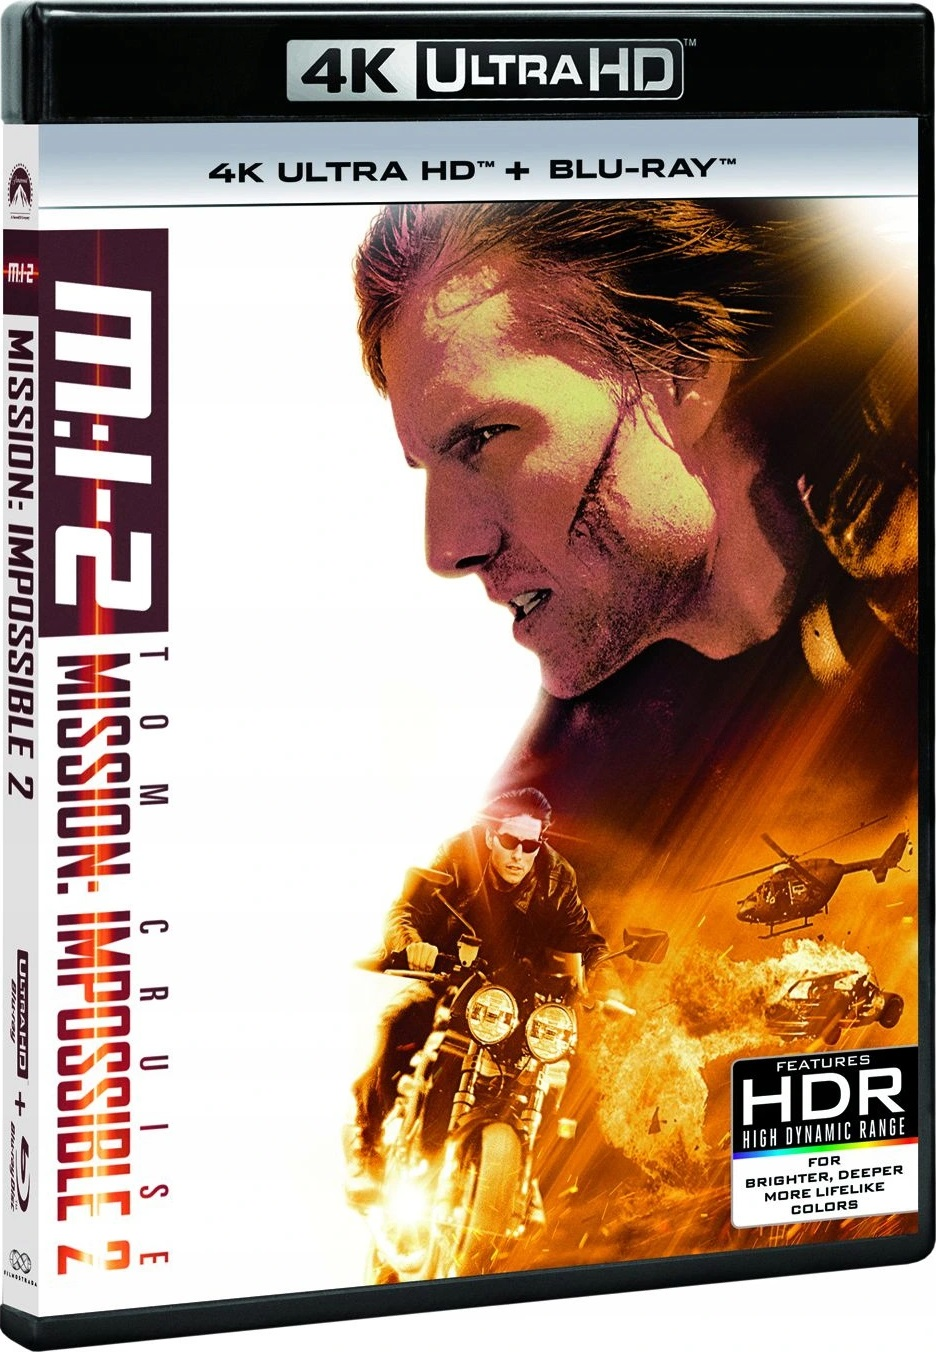 Mission: Impossible 2 (2000) - Film 4K Ultra-HD